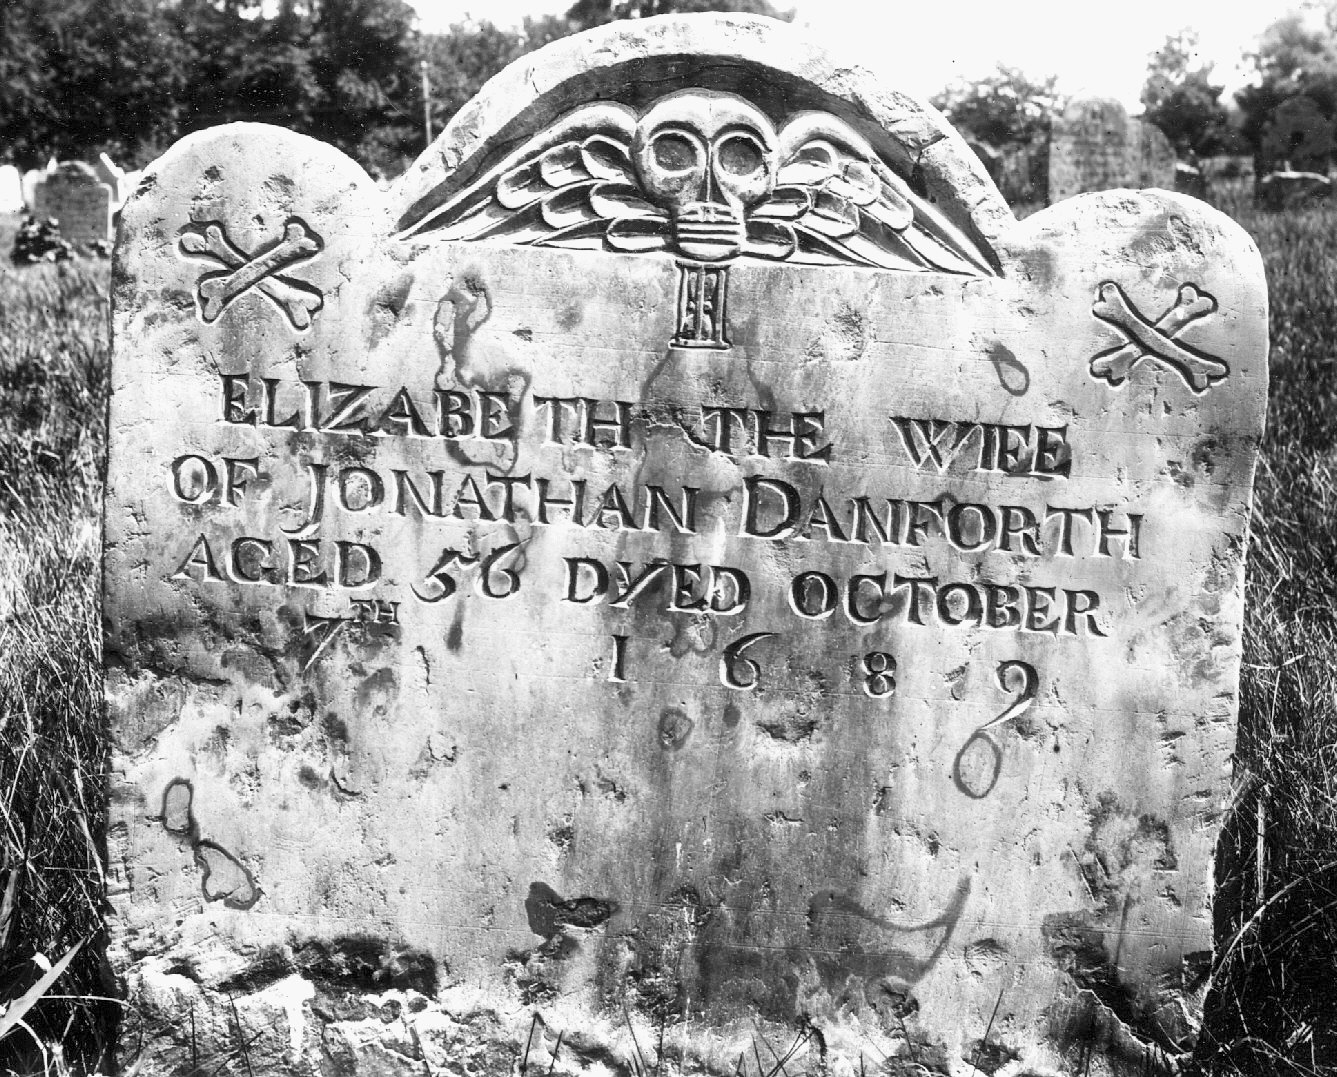 Danforth, Elizabeth